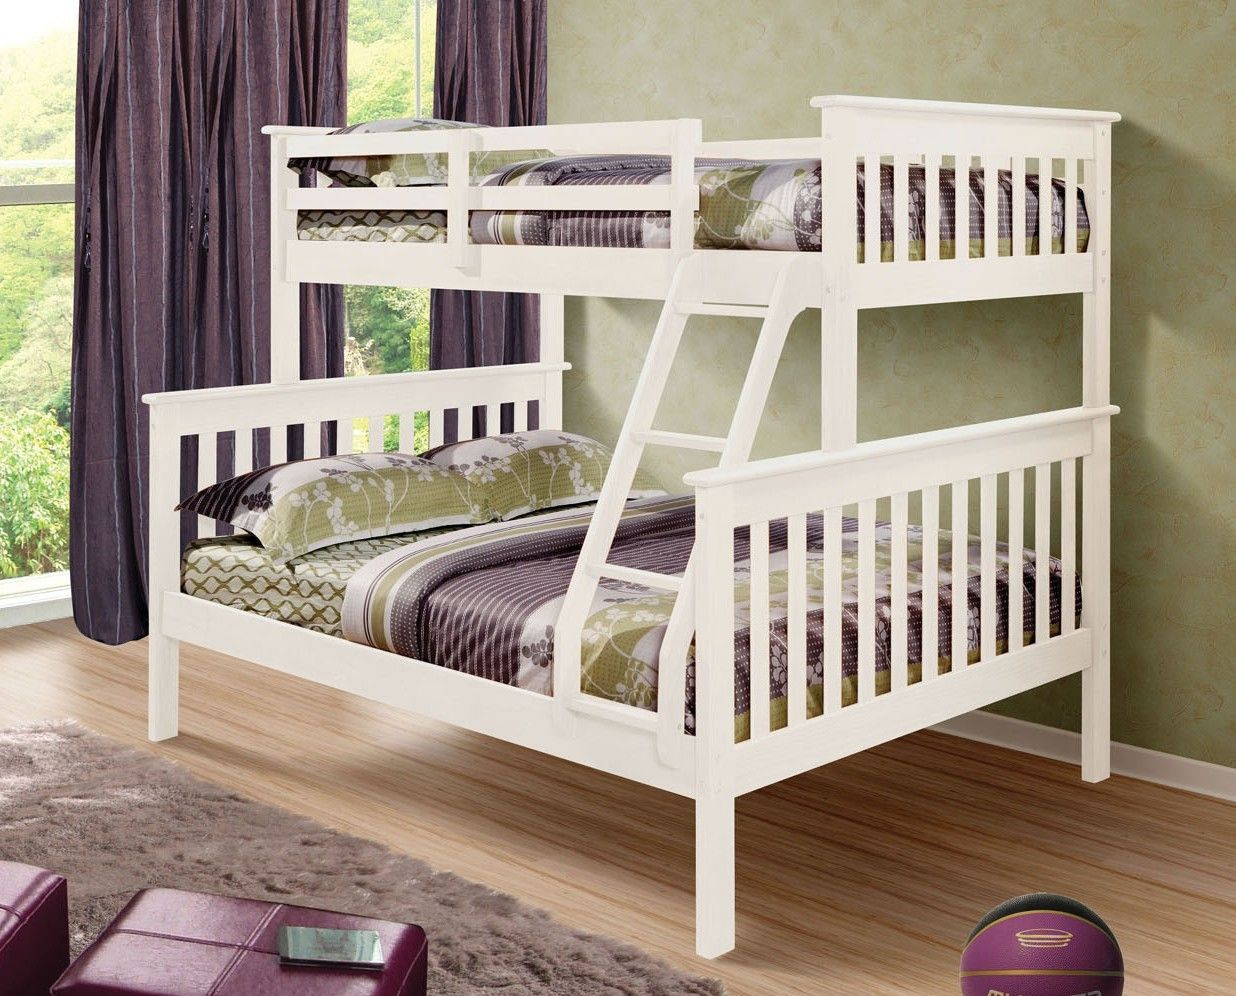 BUNK BED KINGDOM Twin over Full Bunk Bed (White), 548